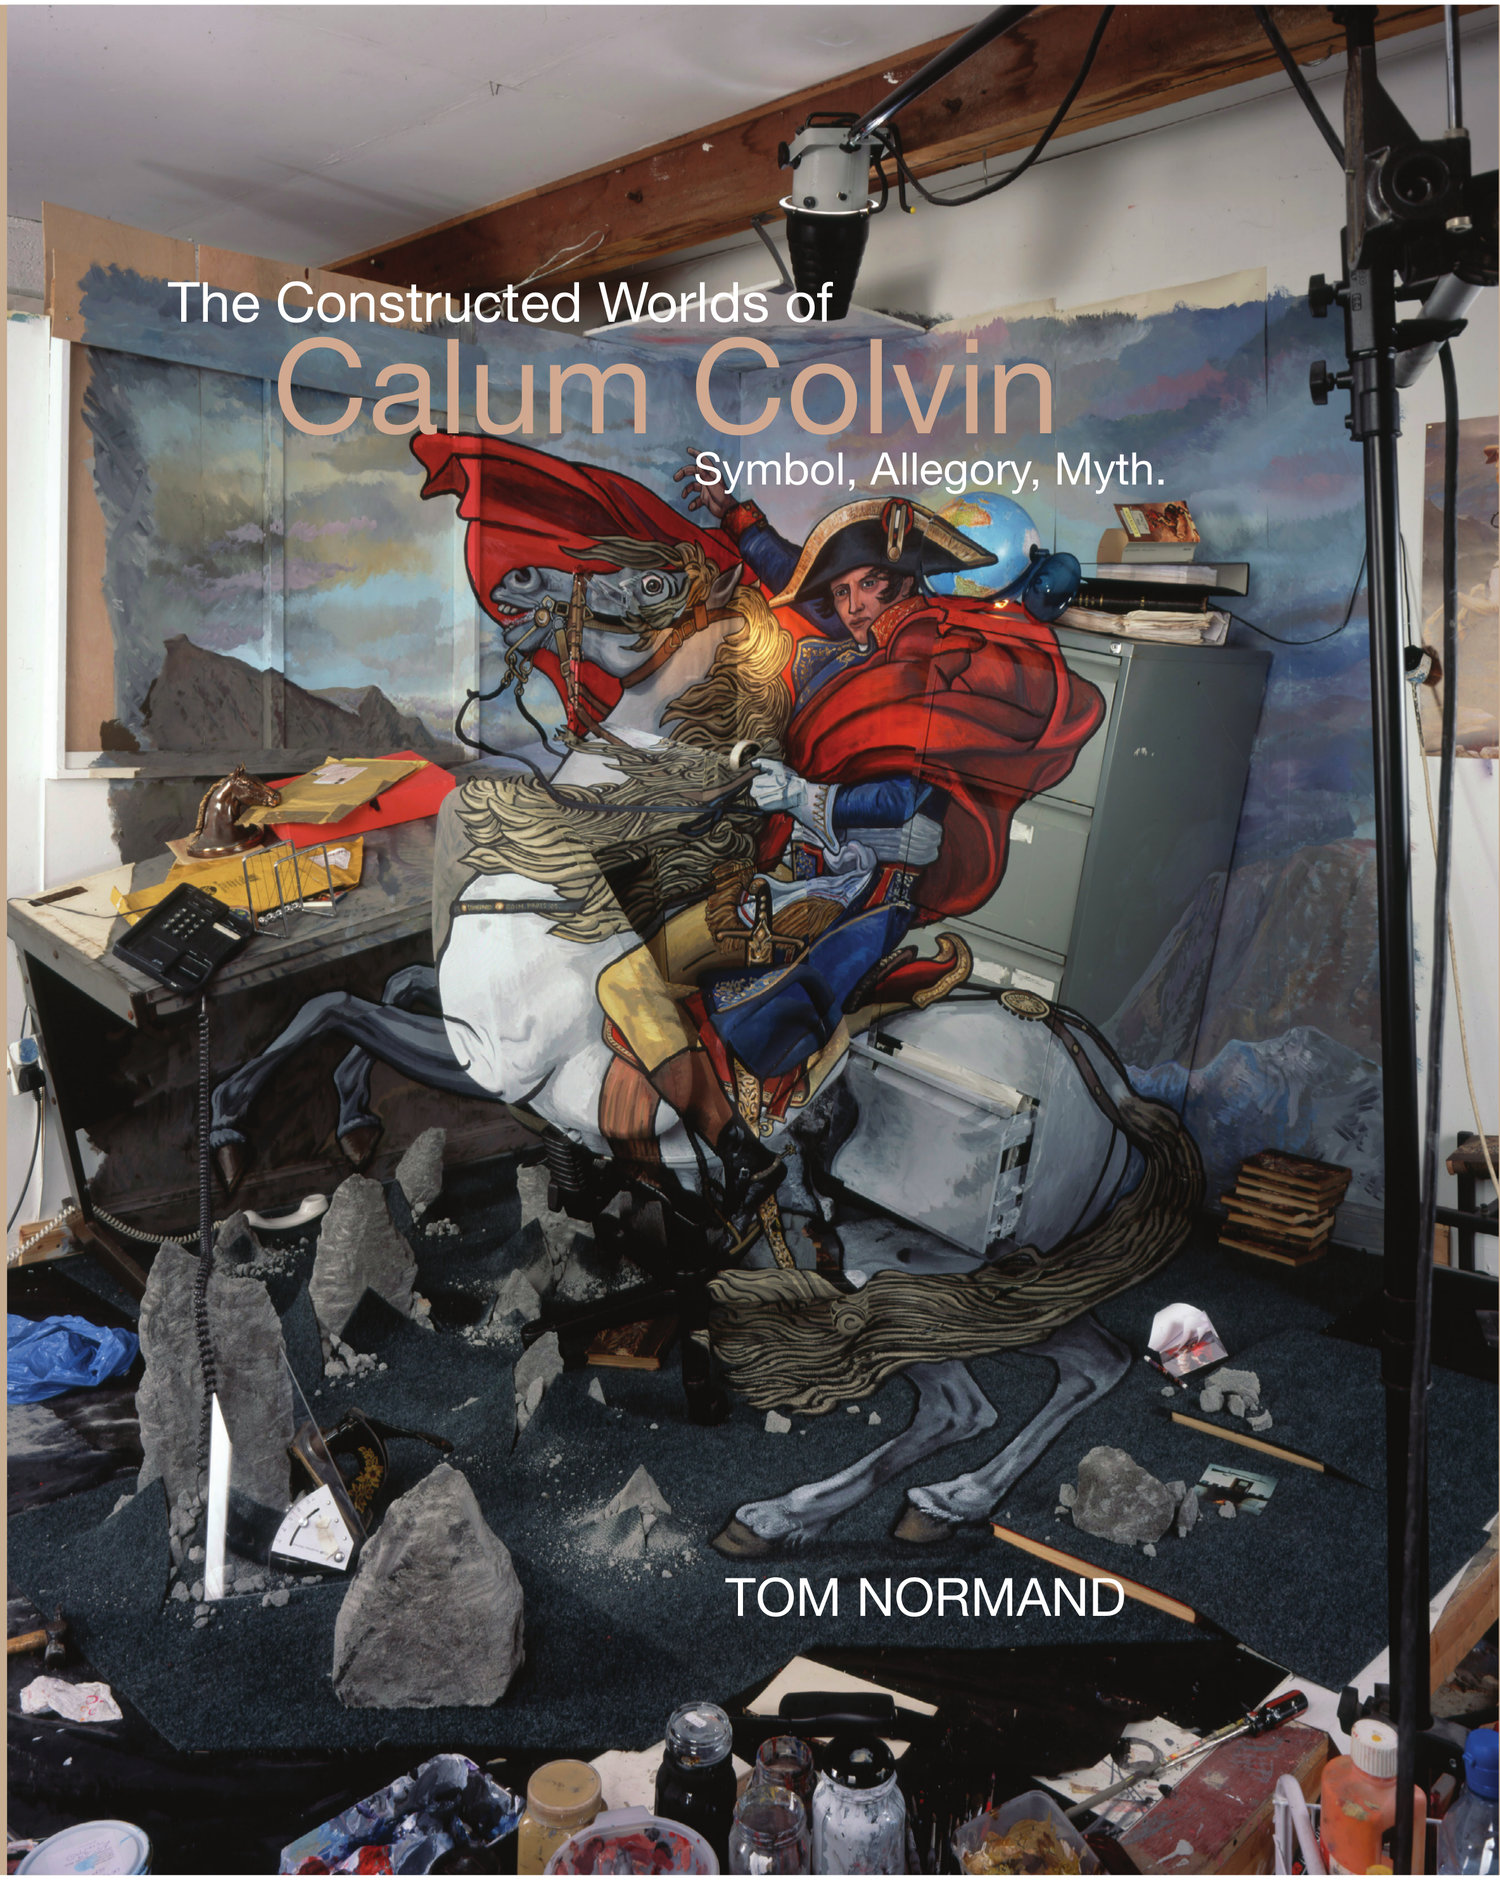 The+Constructed+Worlds+of+Calum+Colvin+9781912147892+Tom+Normand+Luath+Press.jpg